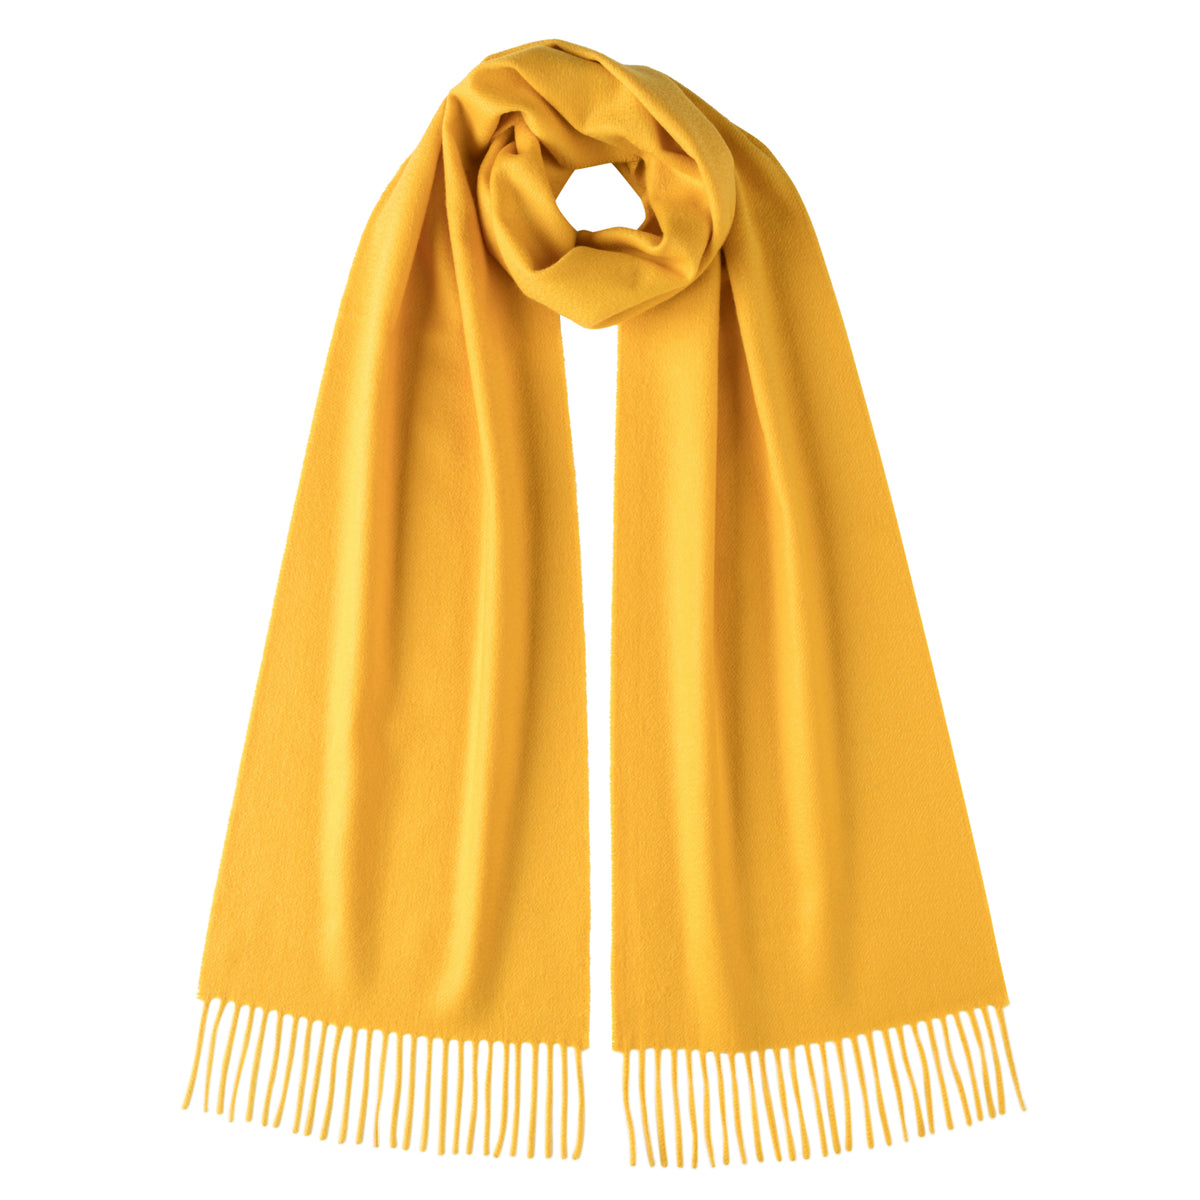 Lomond - Cashmere Scarf - Limited Edition New Colours for 2020